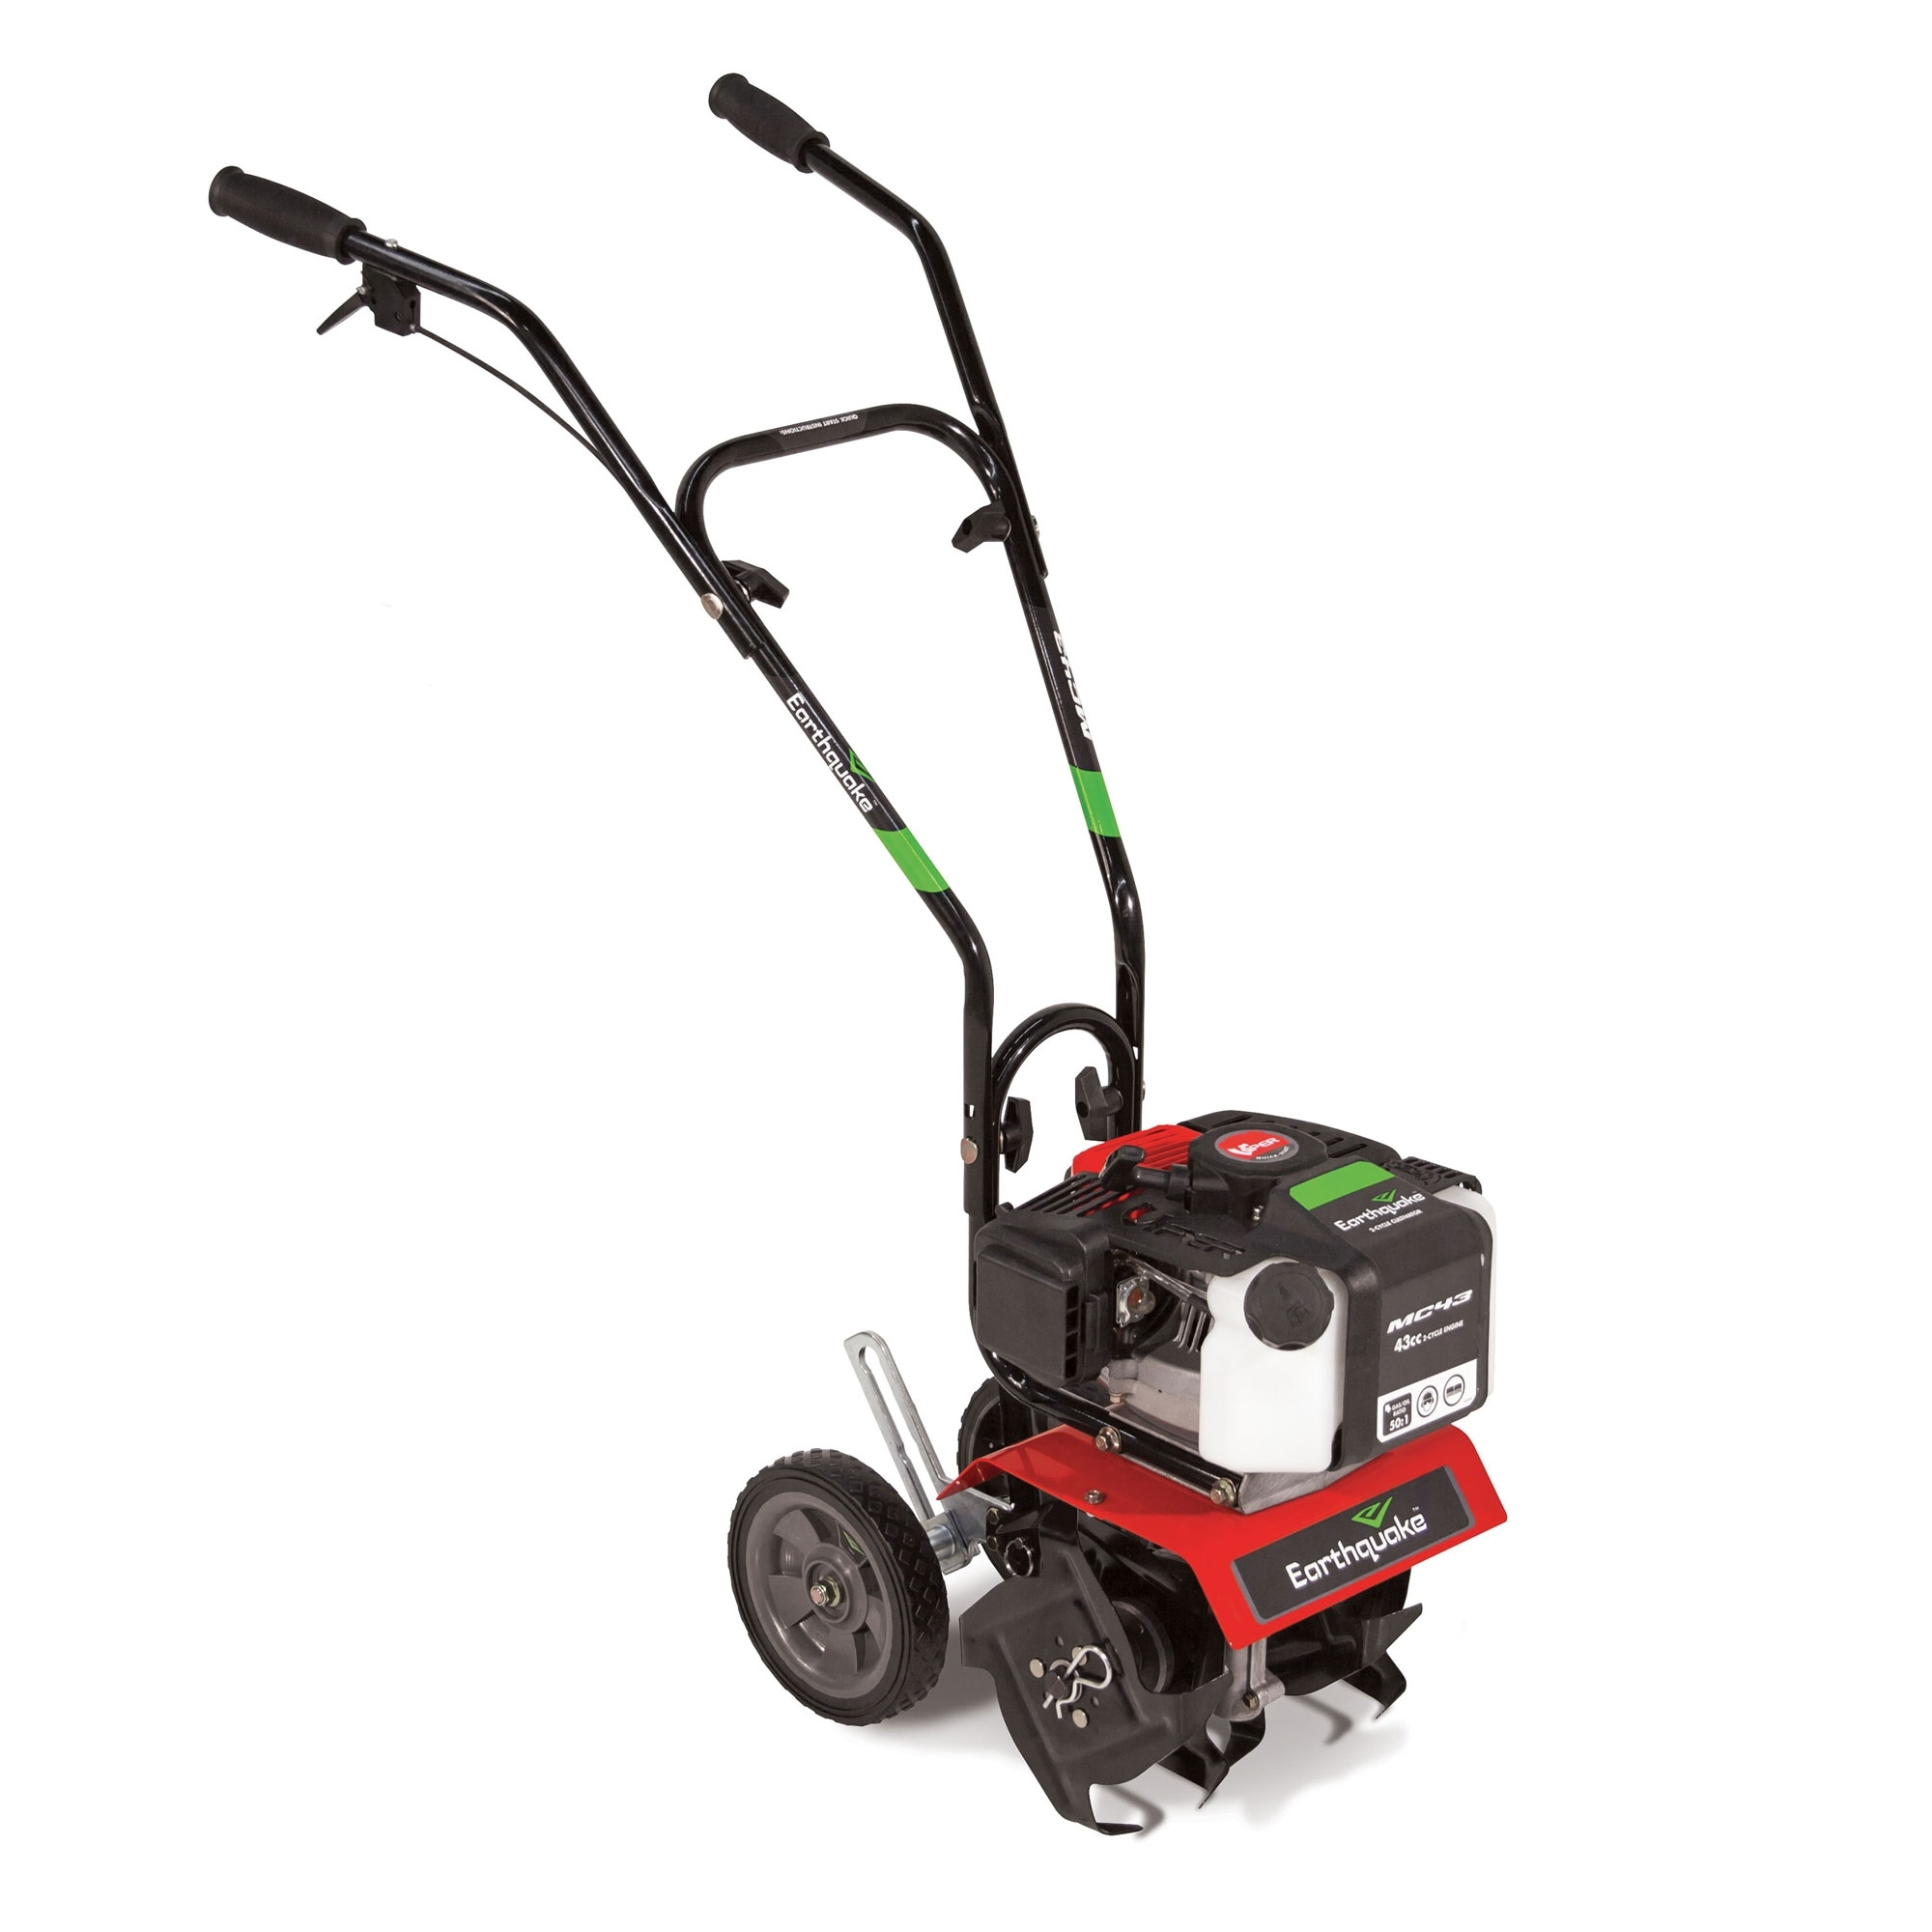 sale rotary garden tiller for hire hoe youtube watch